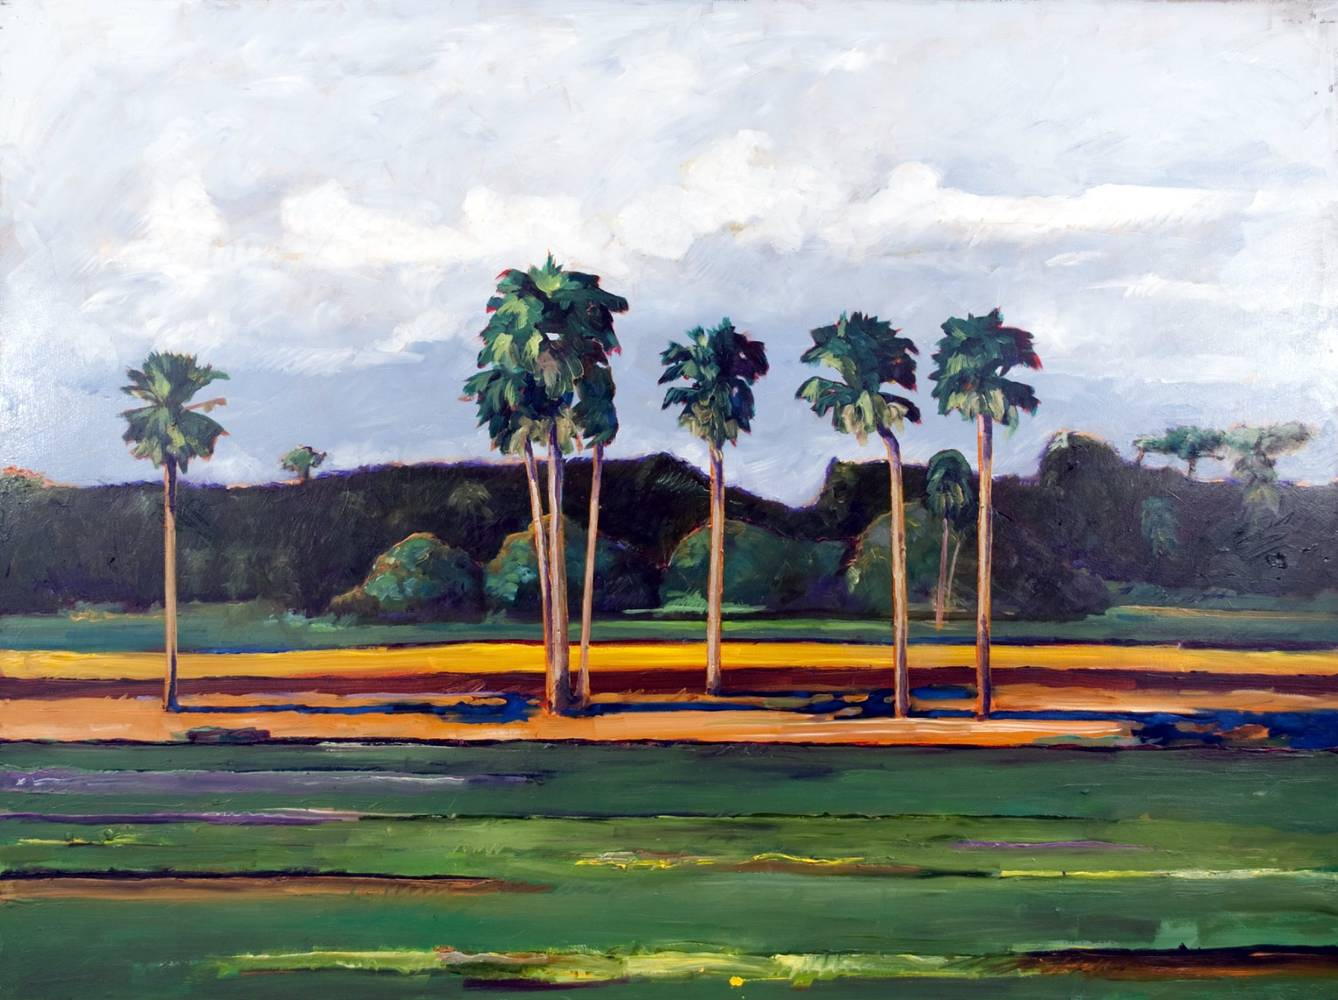 Oil painting Merritt Island by Paul Sershon